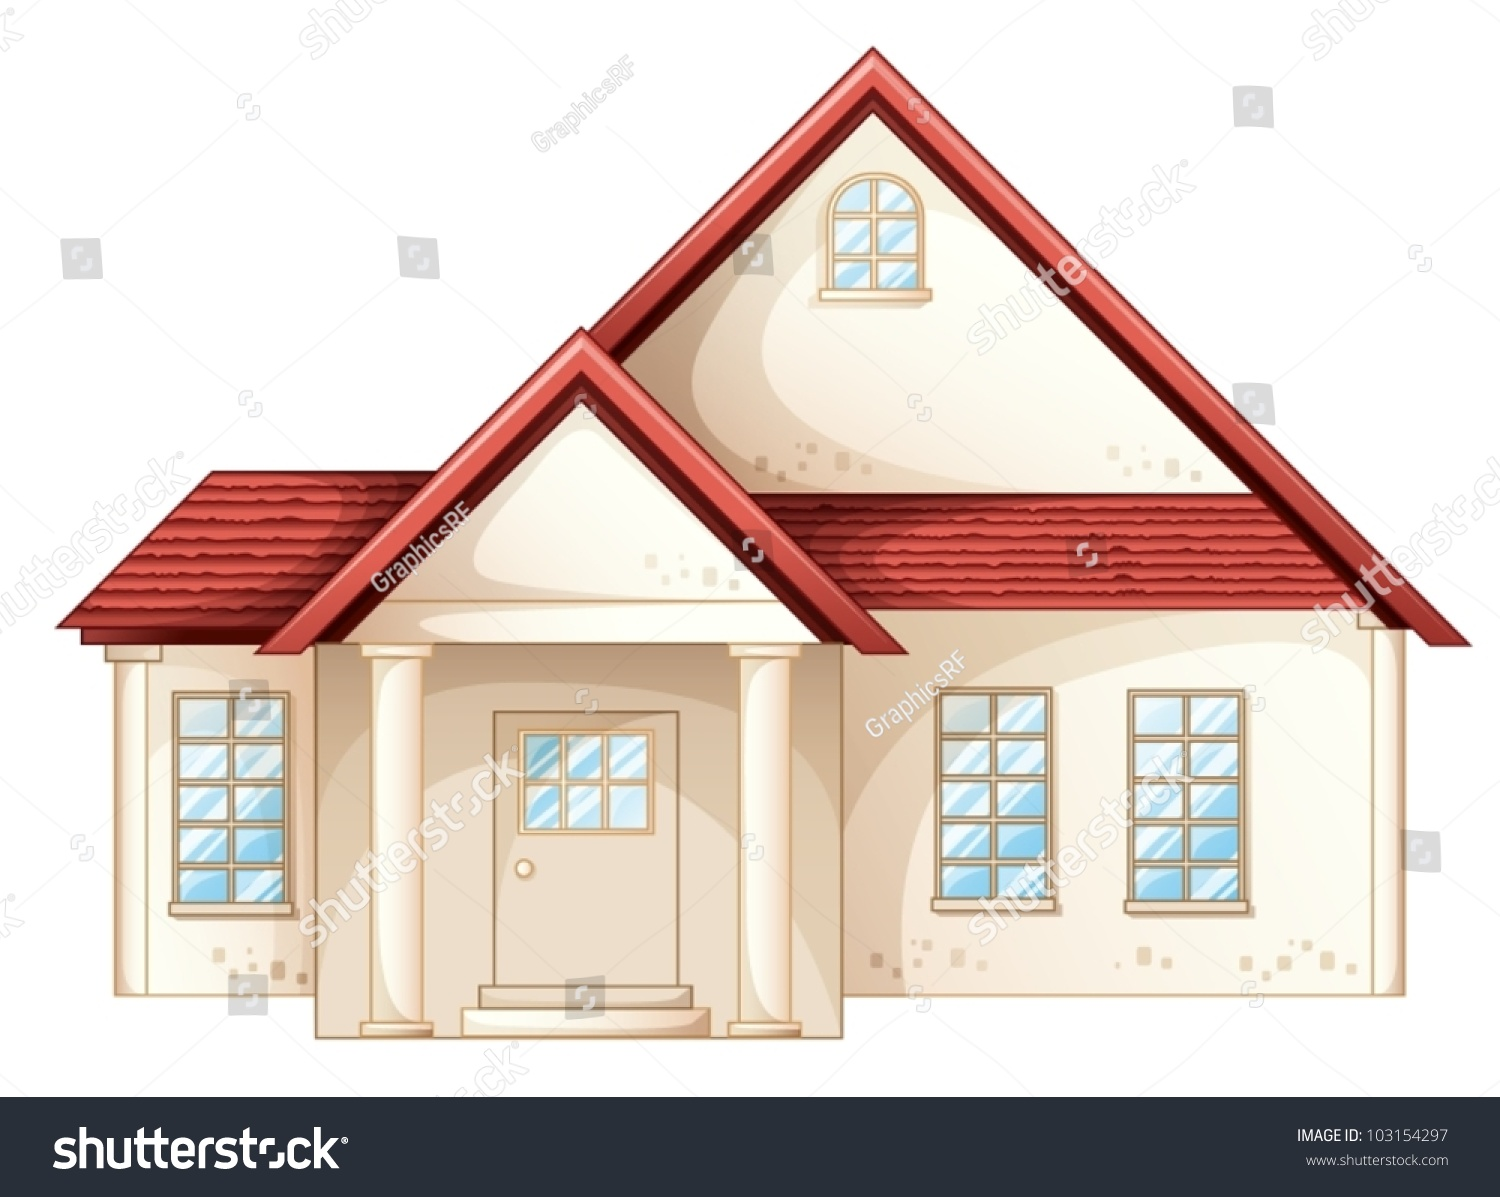 Illustration a simple house front view 103154297 shutterstock - Images simple home ...